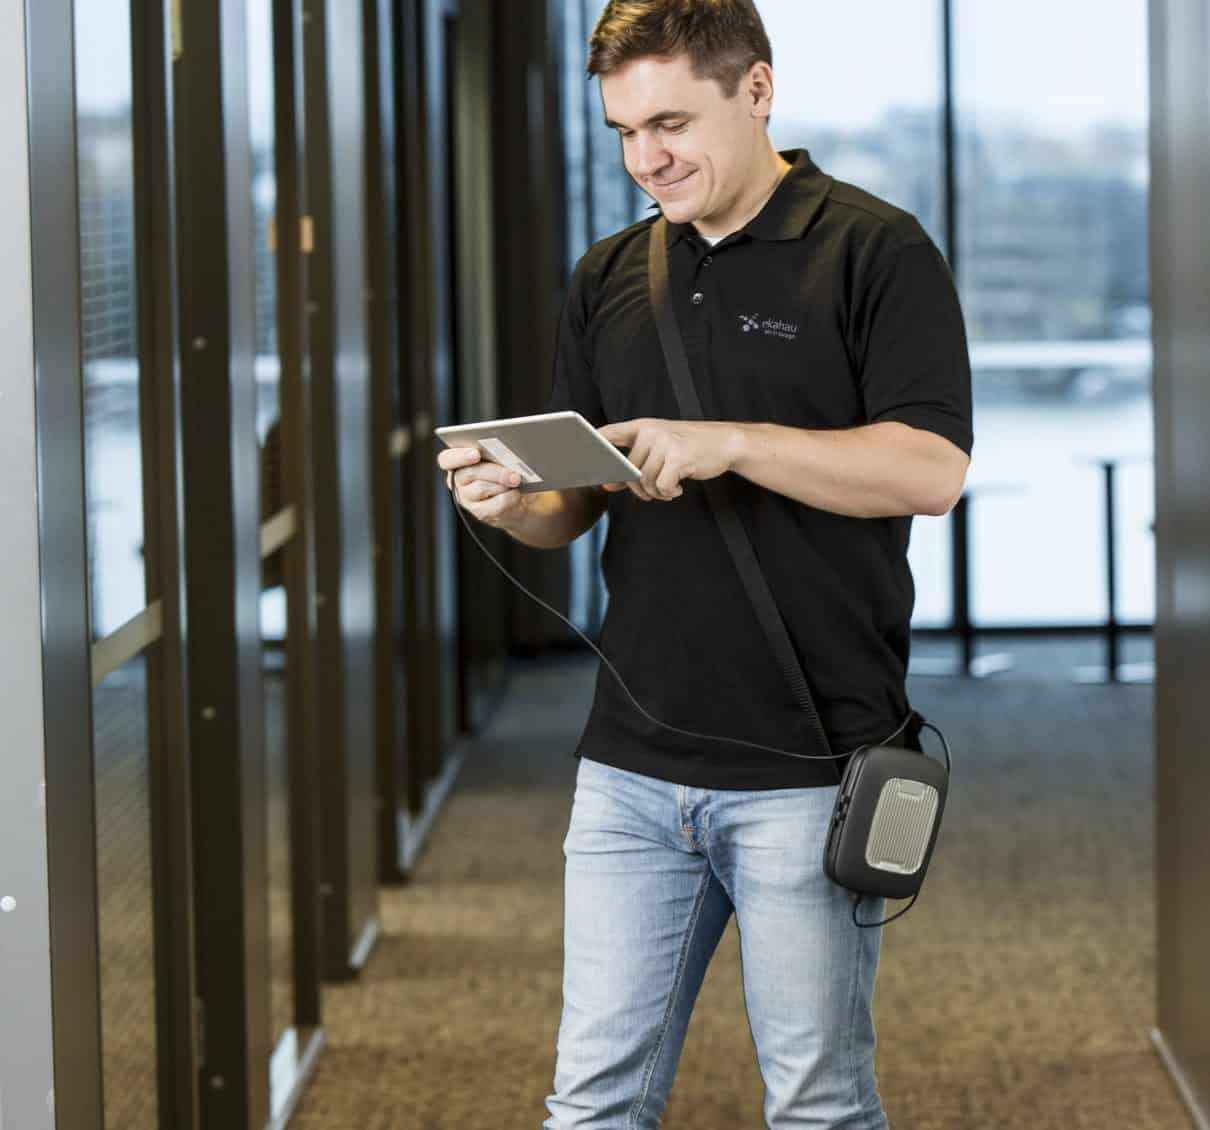 Man with Ekahau Sidekick using tablet